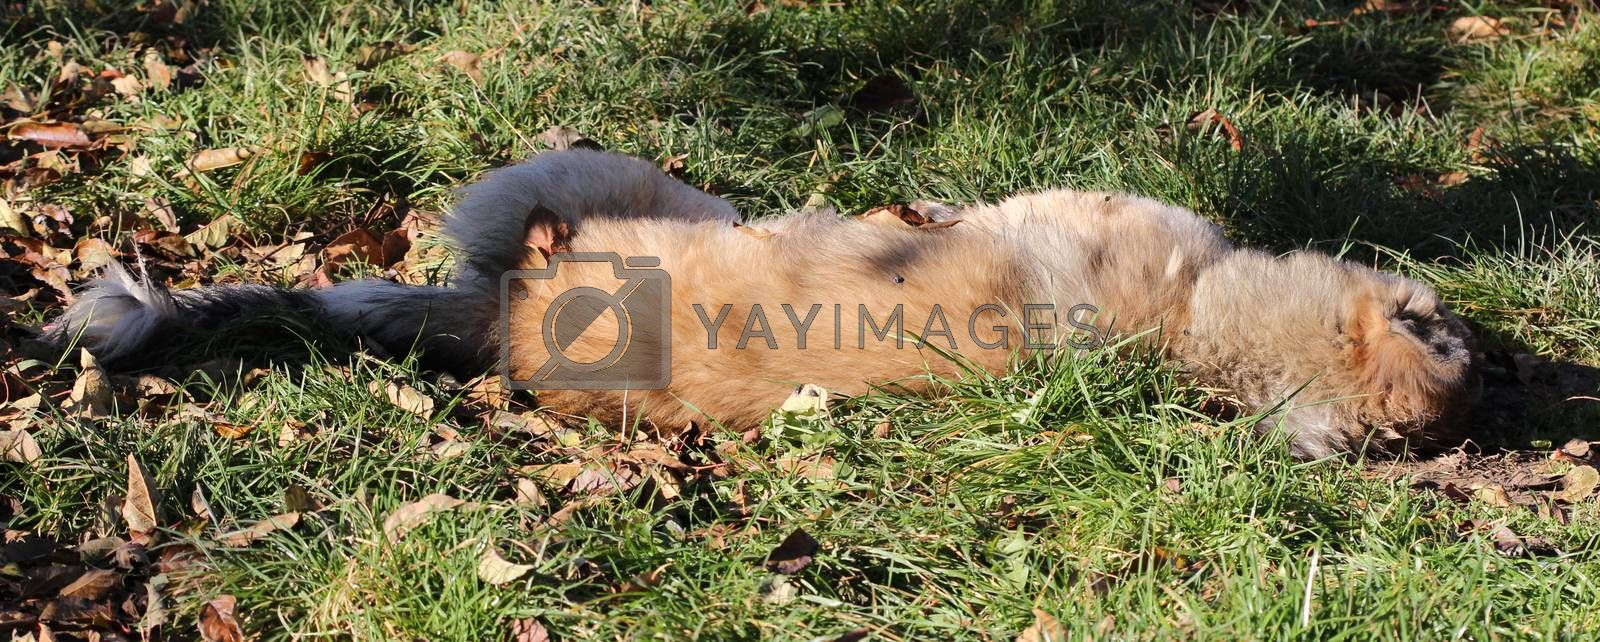 picture of a Poisoned dog on a grass in november morning. Save animals concept.